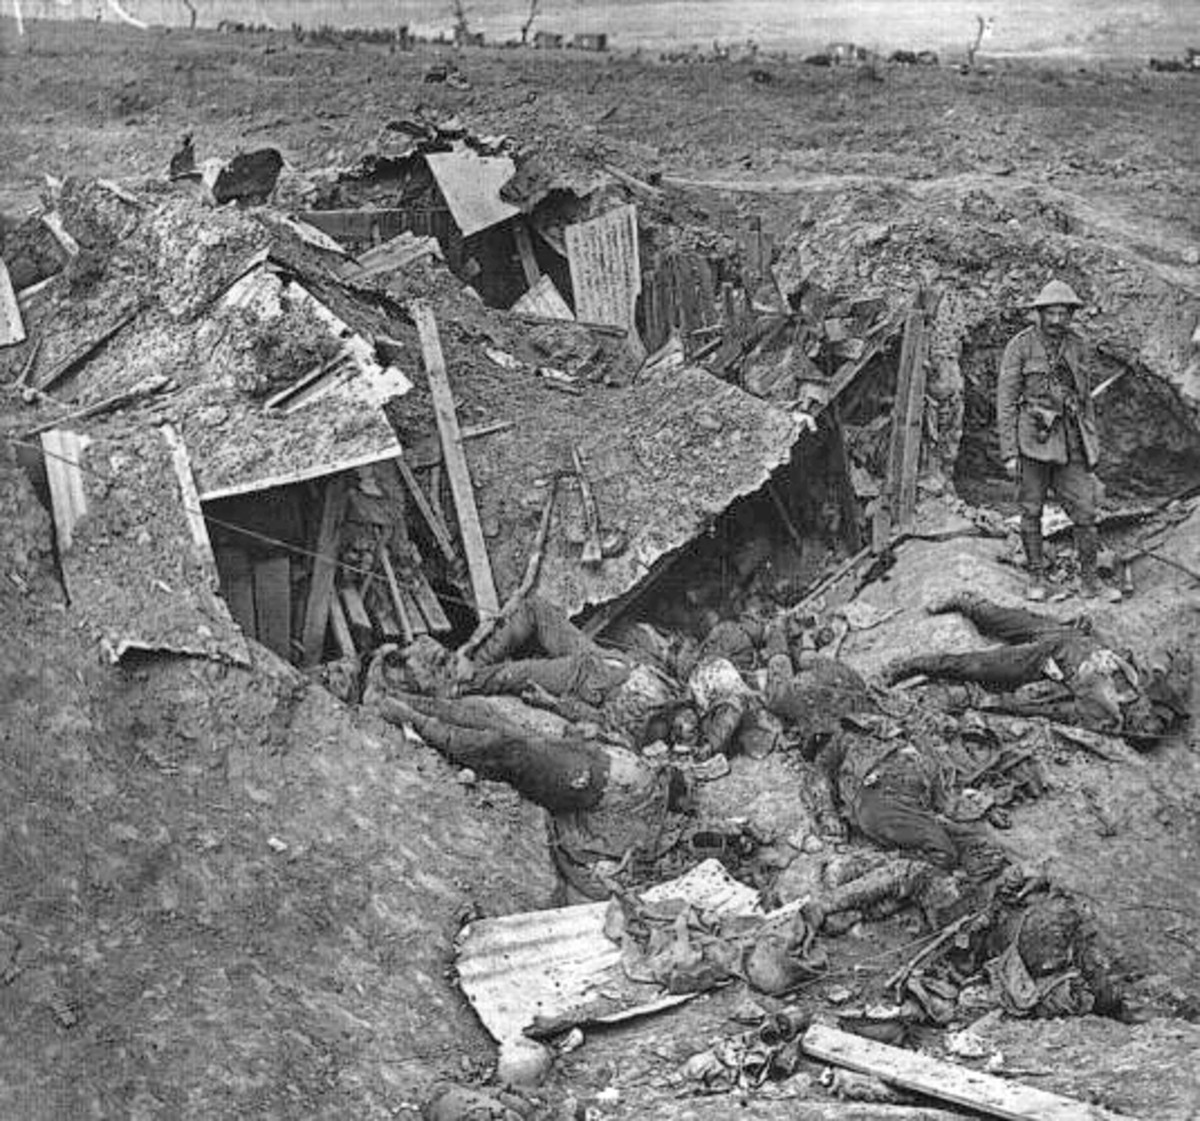 A photo showing a destroyed German trench along with dead troops taken in September 1916.